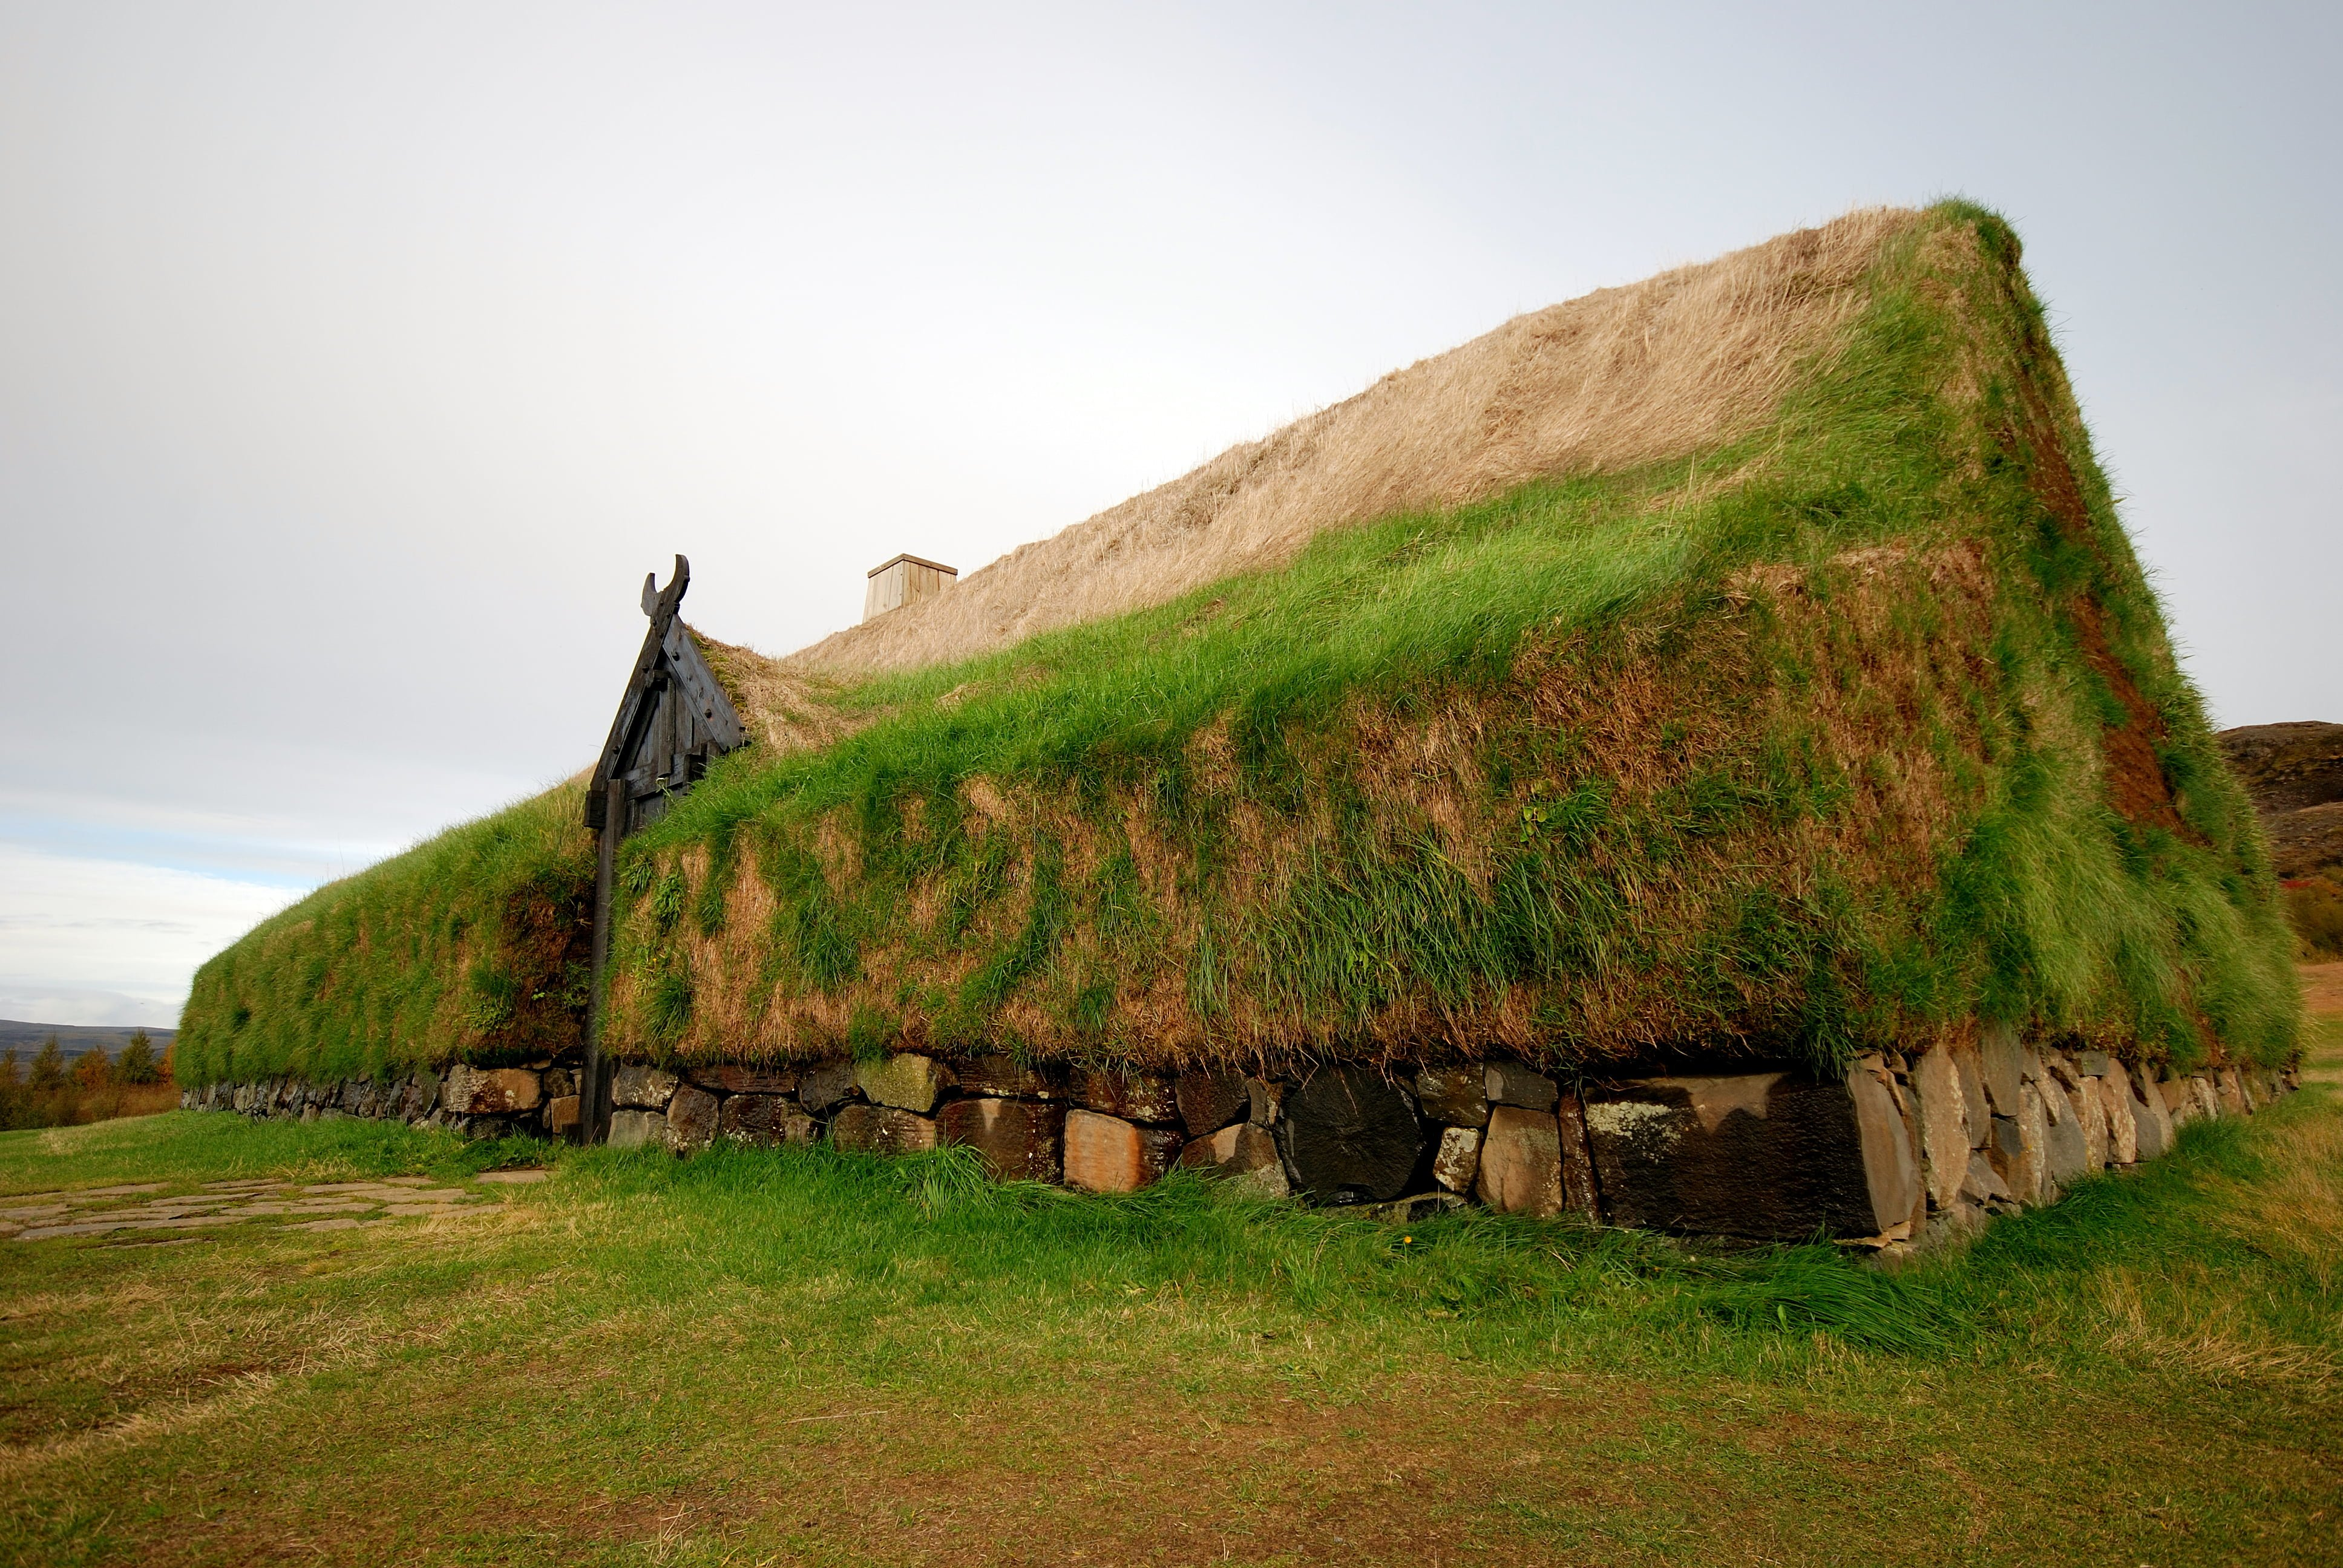 A photograph of Þjóðveldisbærinn in Iceland, a reconstruction of the Viking Longhouse Stöng. The building would have been the center of the farm of a Viking chief in middle ages and would have been used to store food. This replica adheres as closely as possible to the original way of building these longhouses, with a basic wood frame, stone base and turf walls/roof